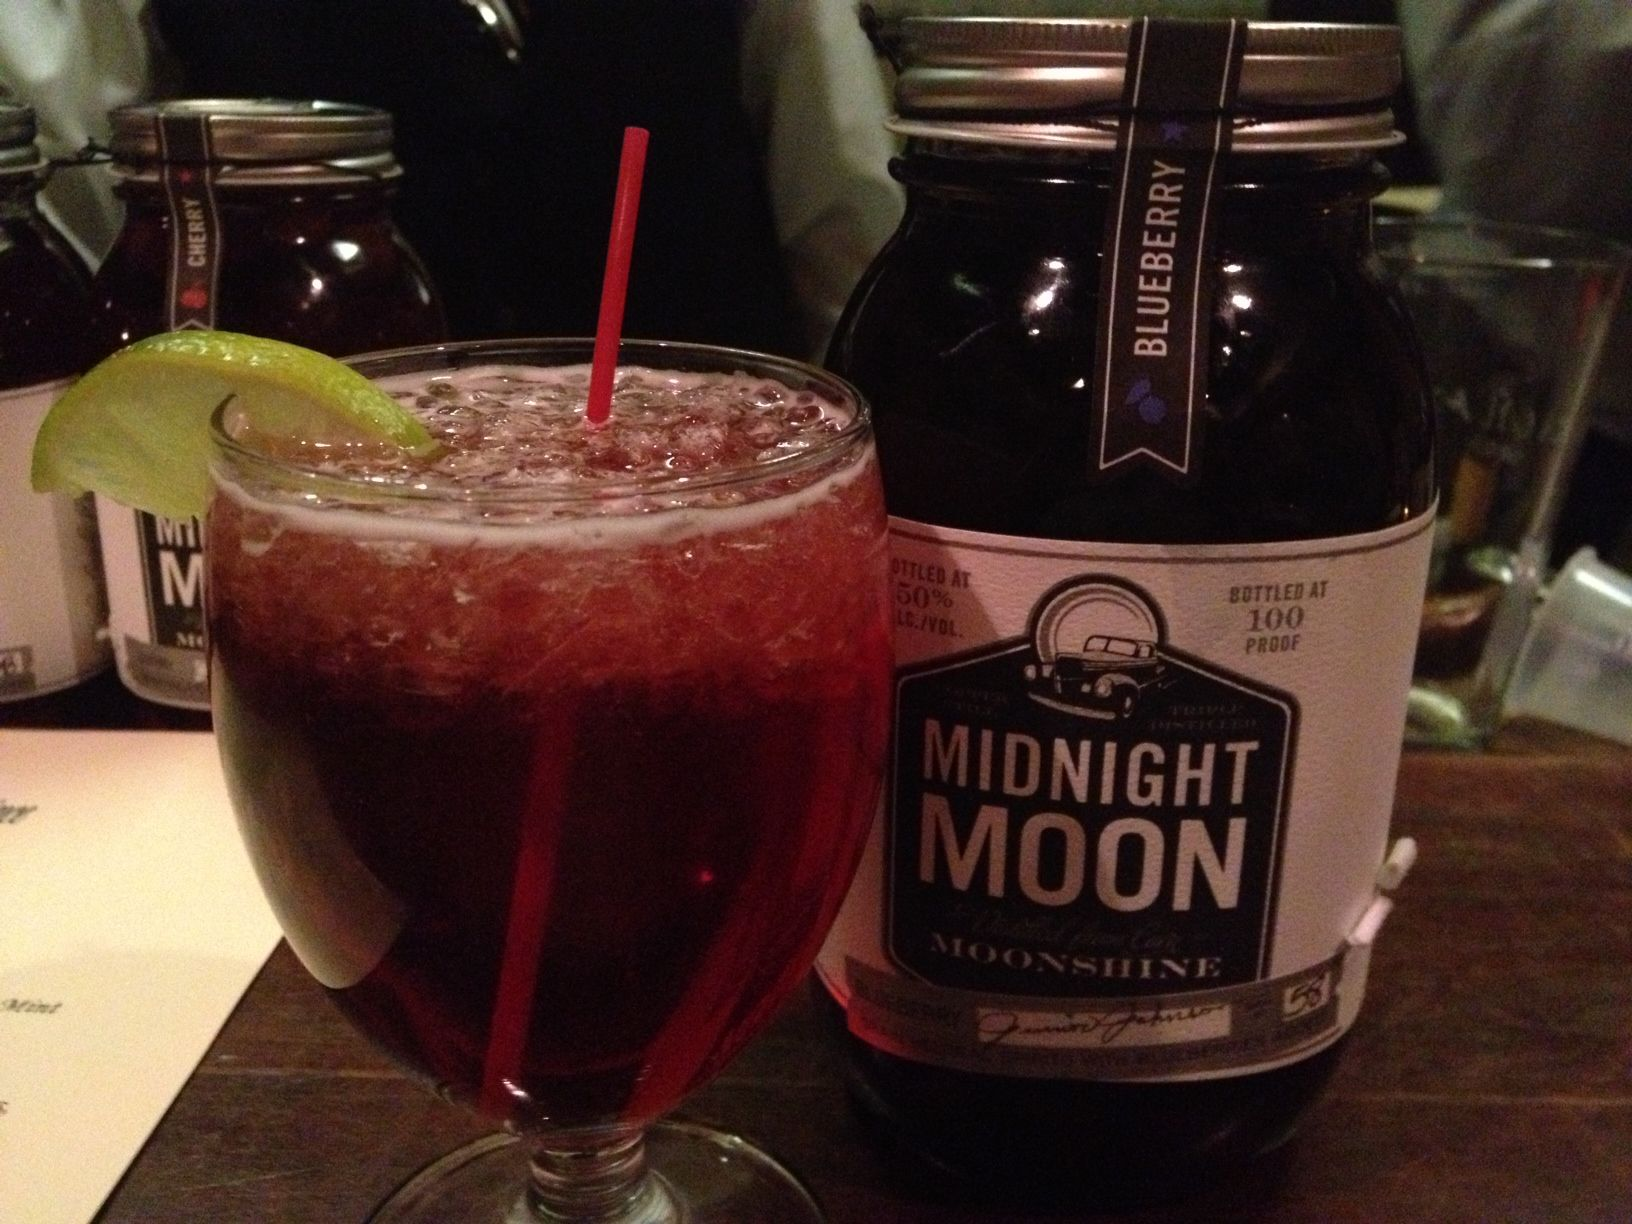 Purple Haze with Midnight Moon Blueberry Moonshine at The King and Prince. #gatravel, #setravel